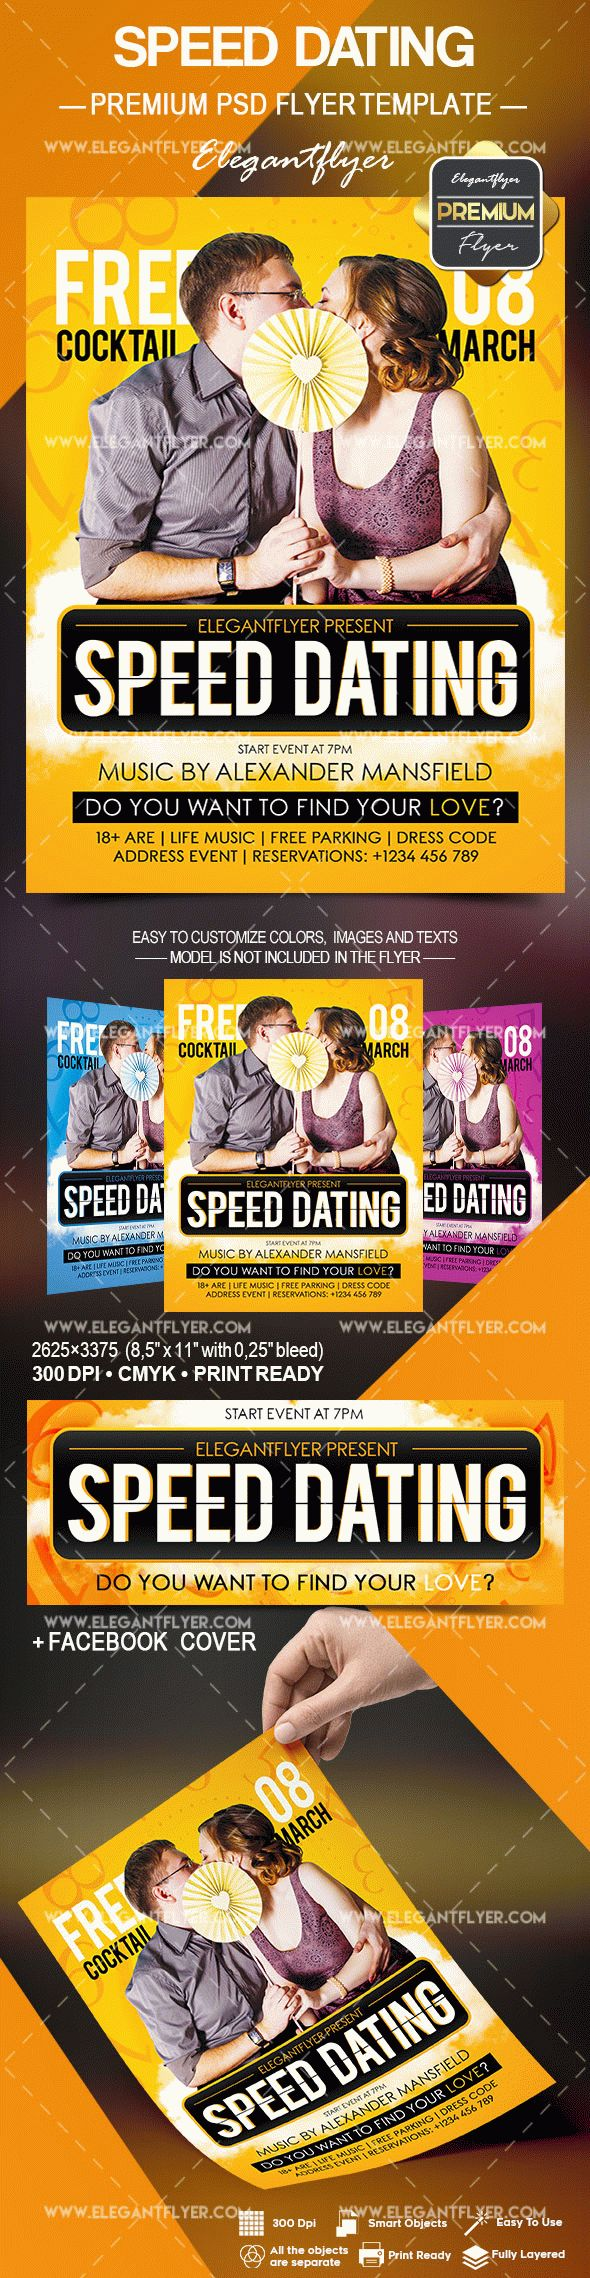 from Dimitri speed dating flyer templates